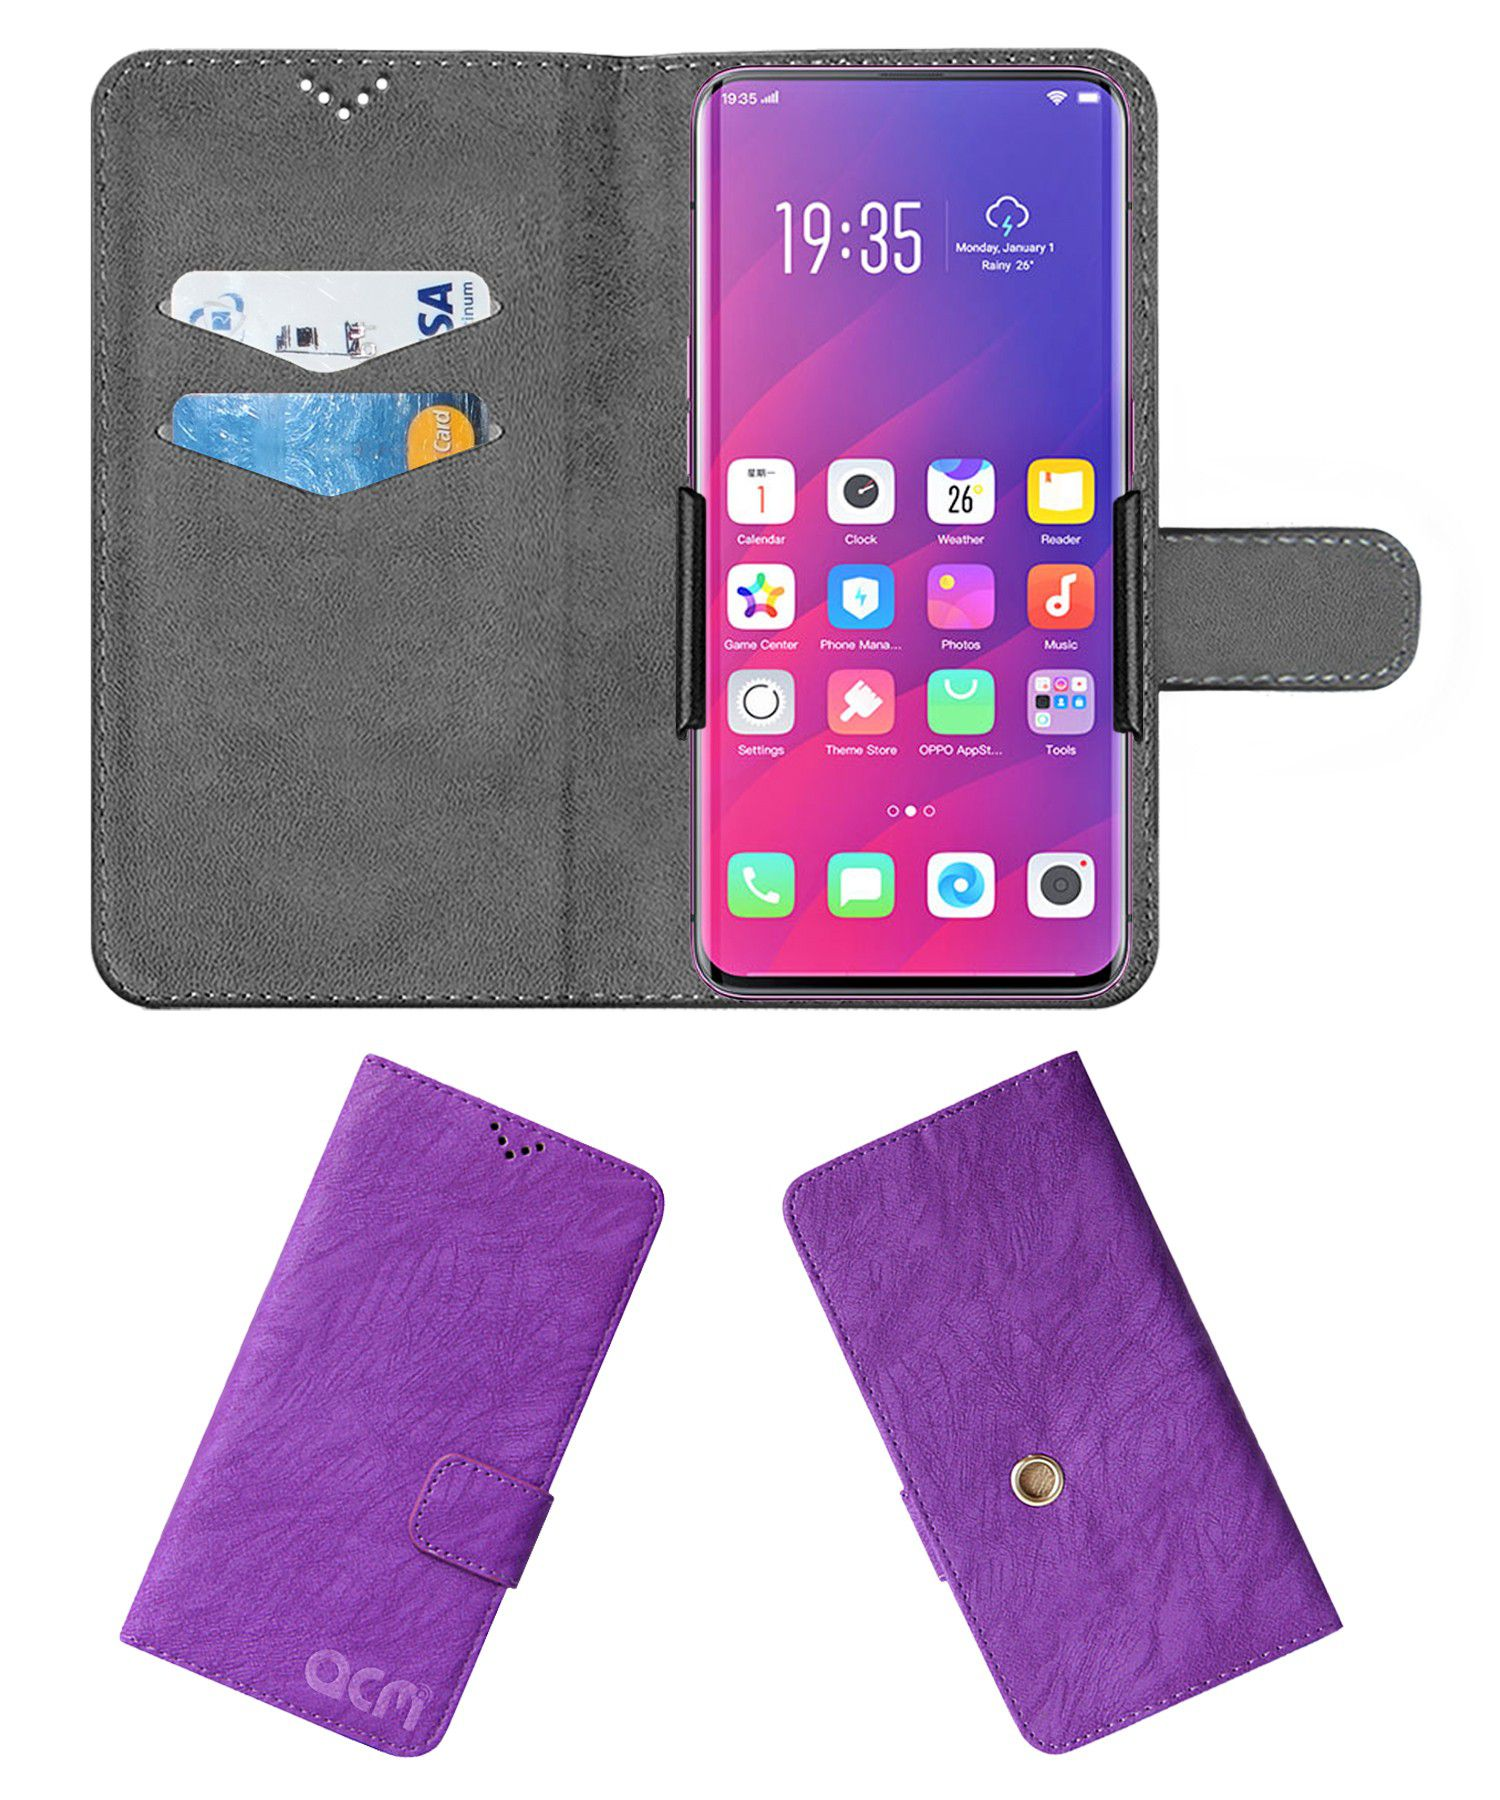 Find X Flip Cover by ACM - Purple Clip holder to hold your mobile securely